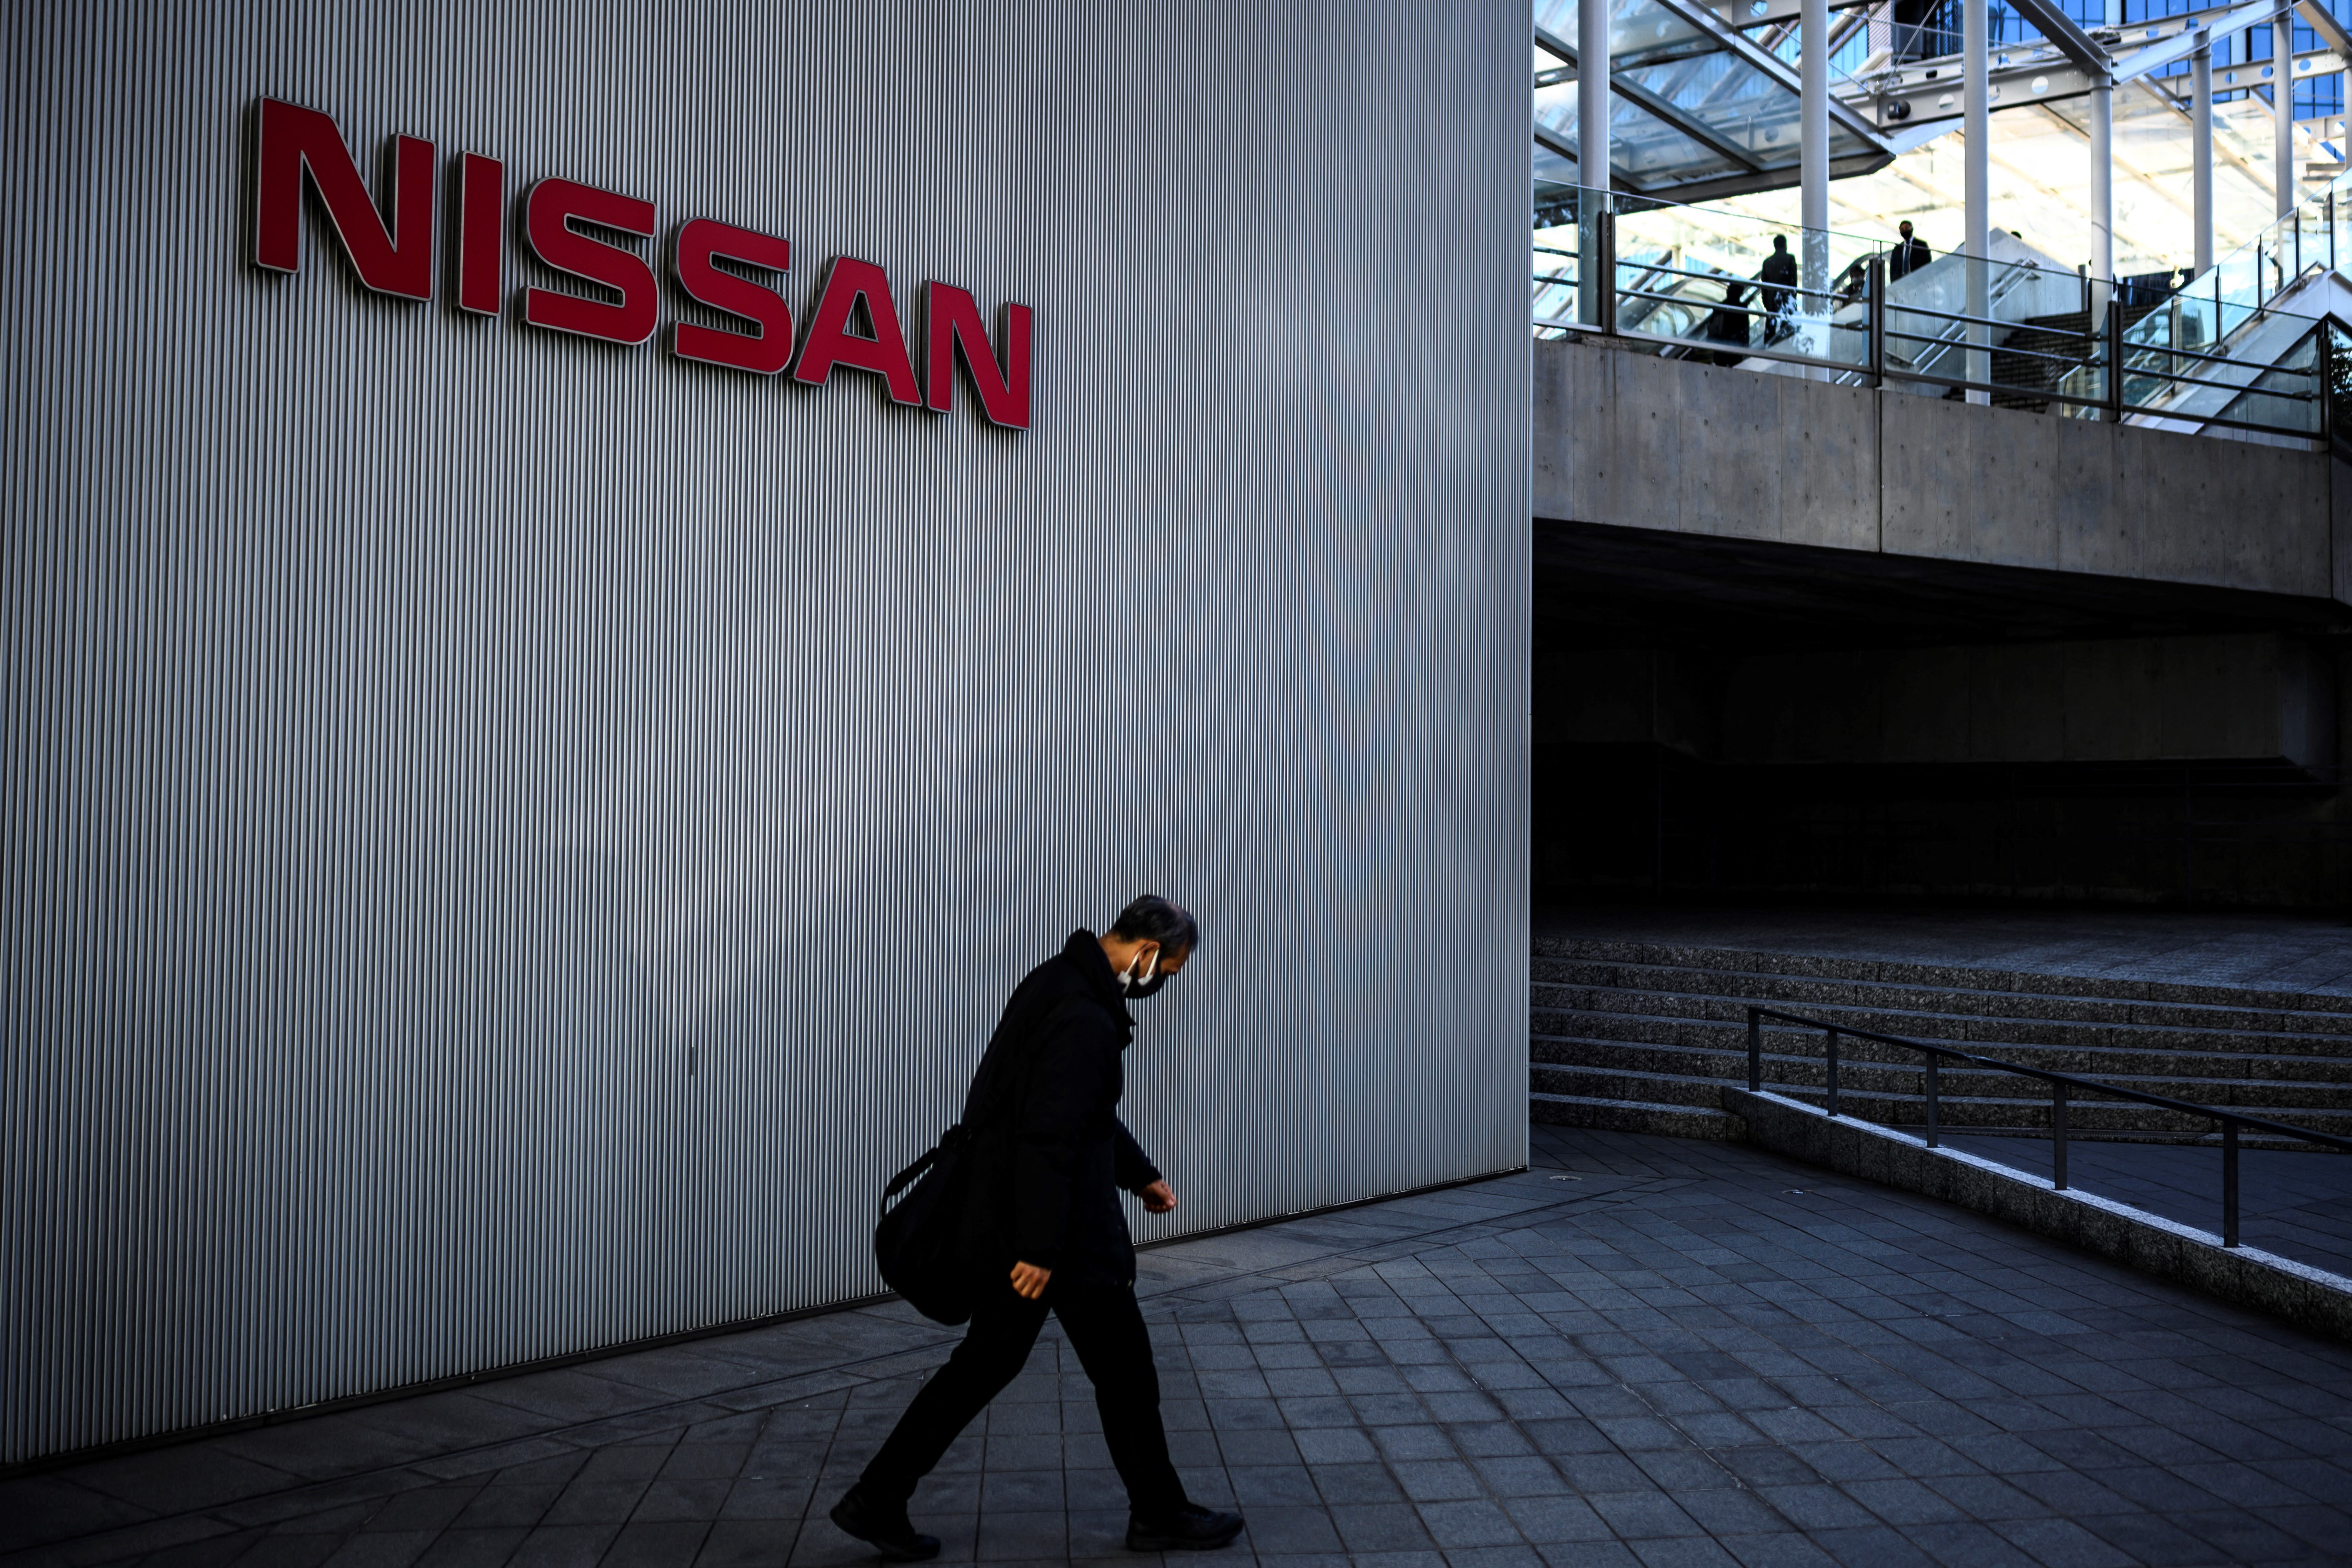 Nissan says not in talks with Apple on self-driving cars